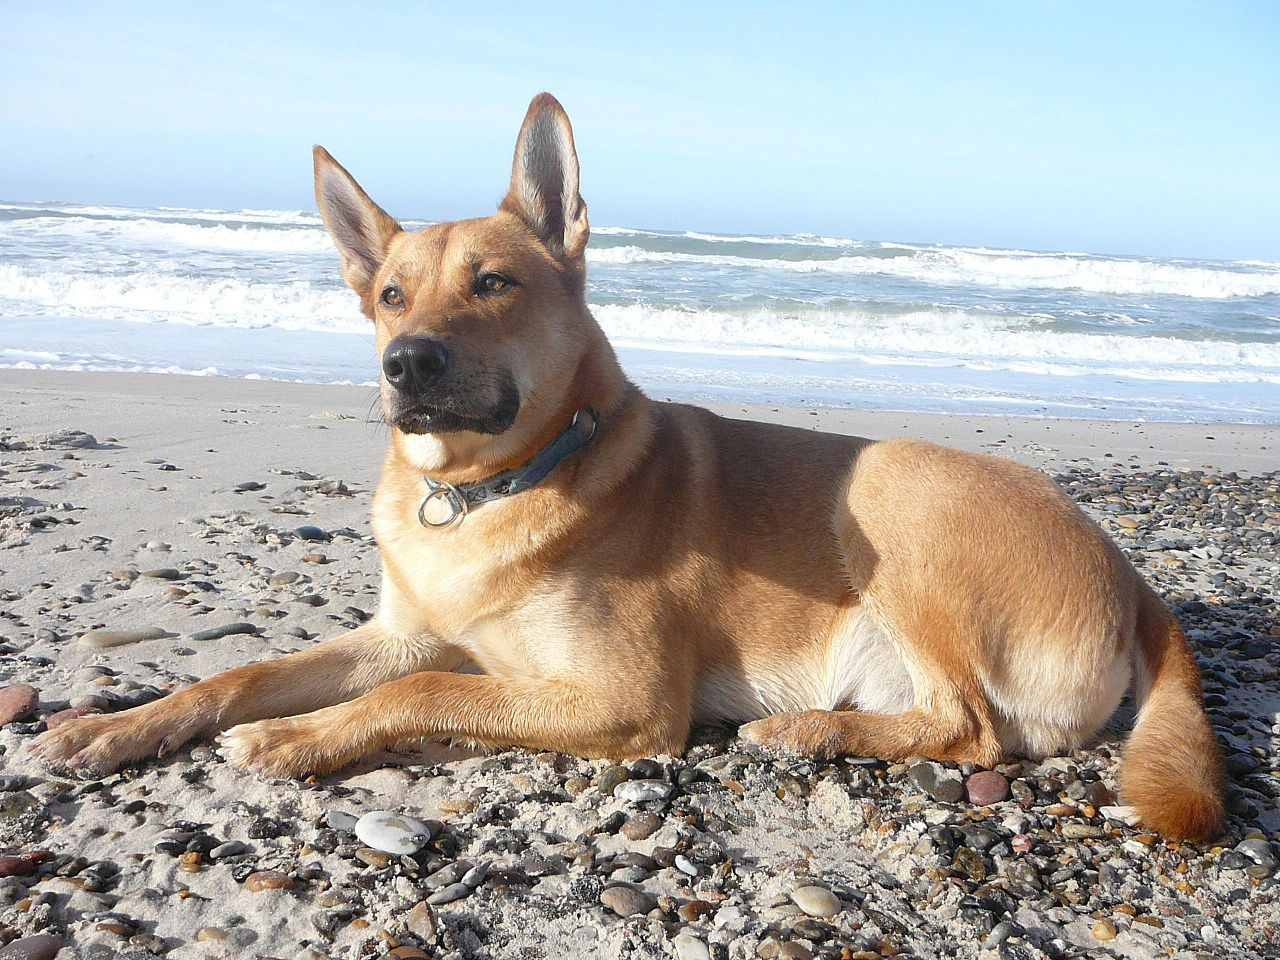 One Day I Will Have Another Carolina Dog From Your Friends At